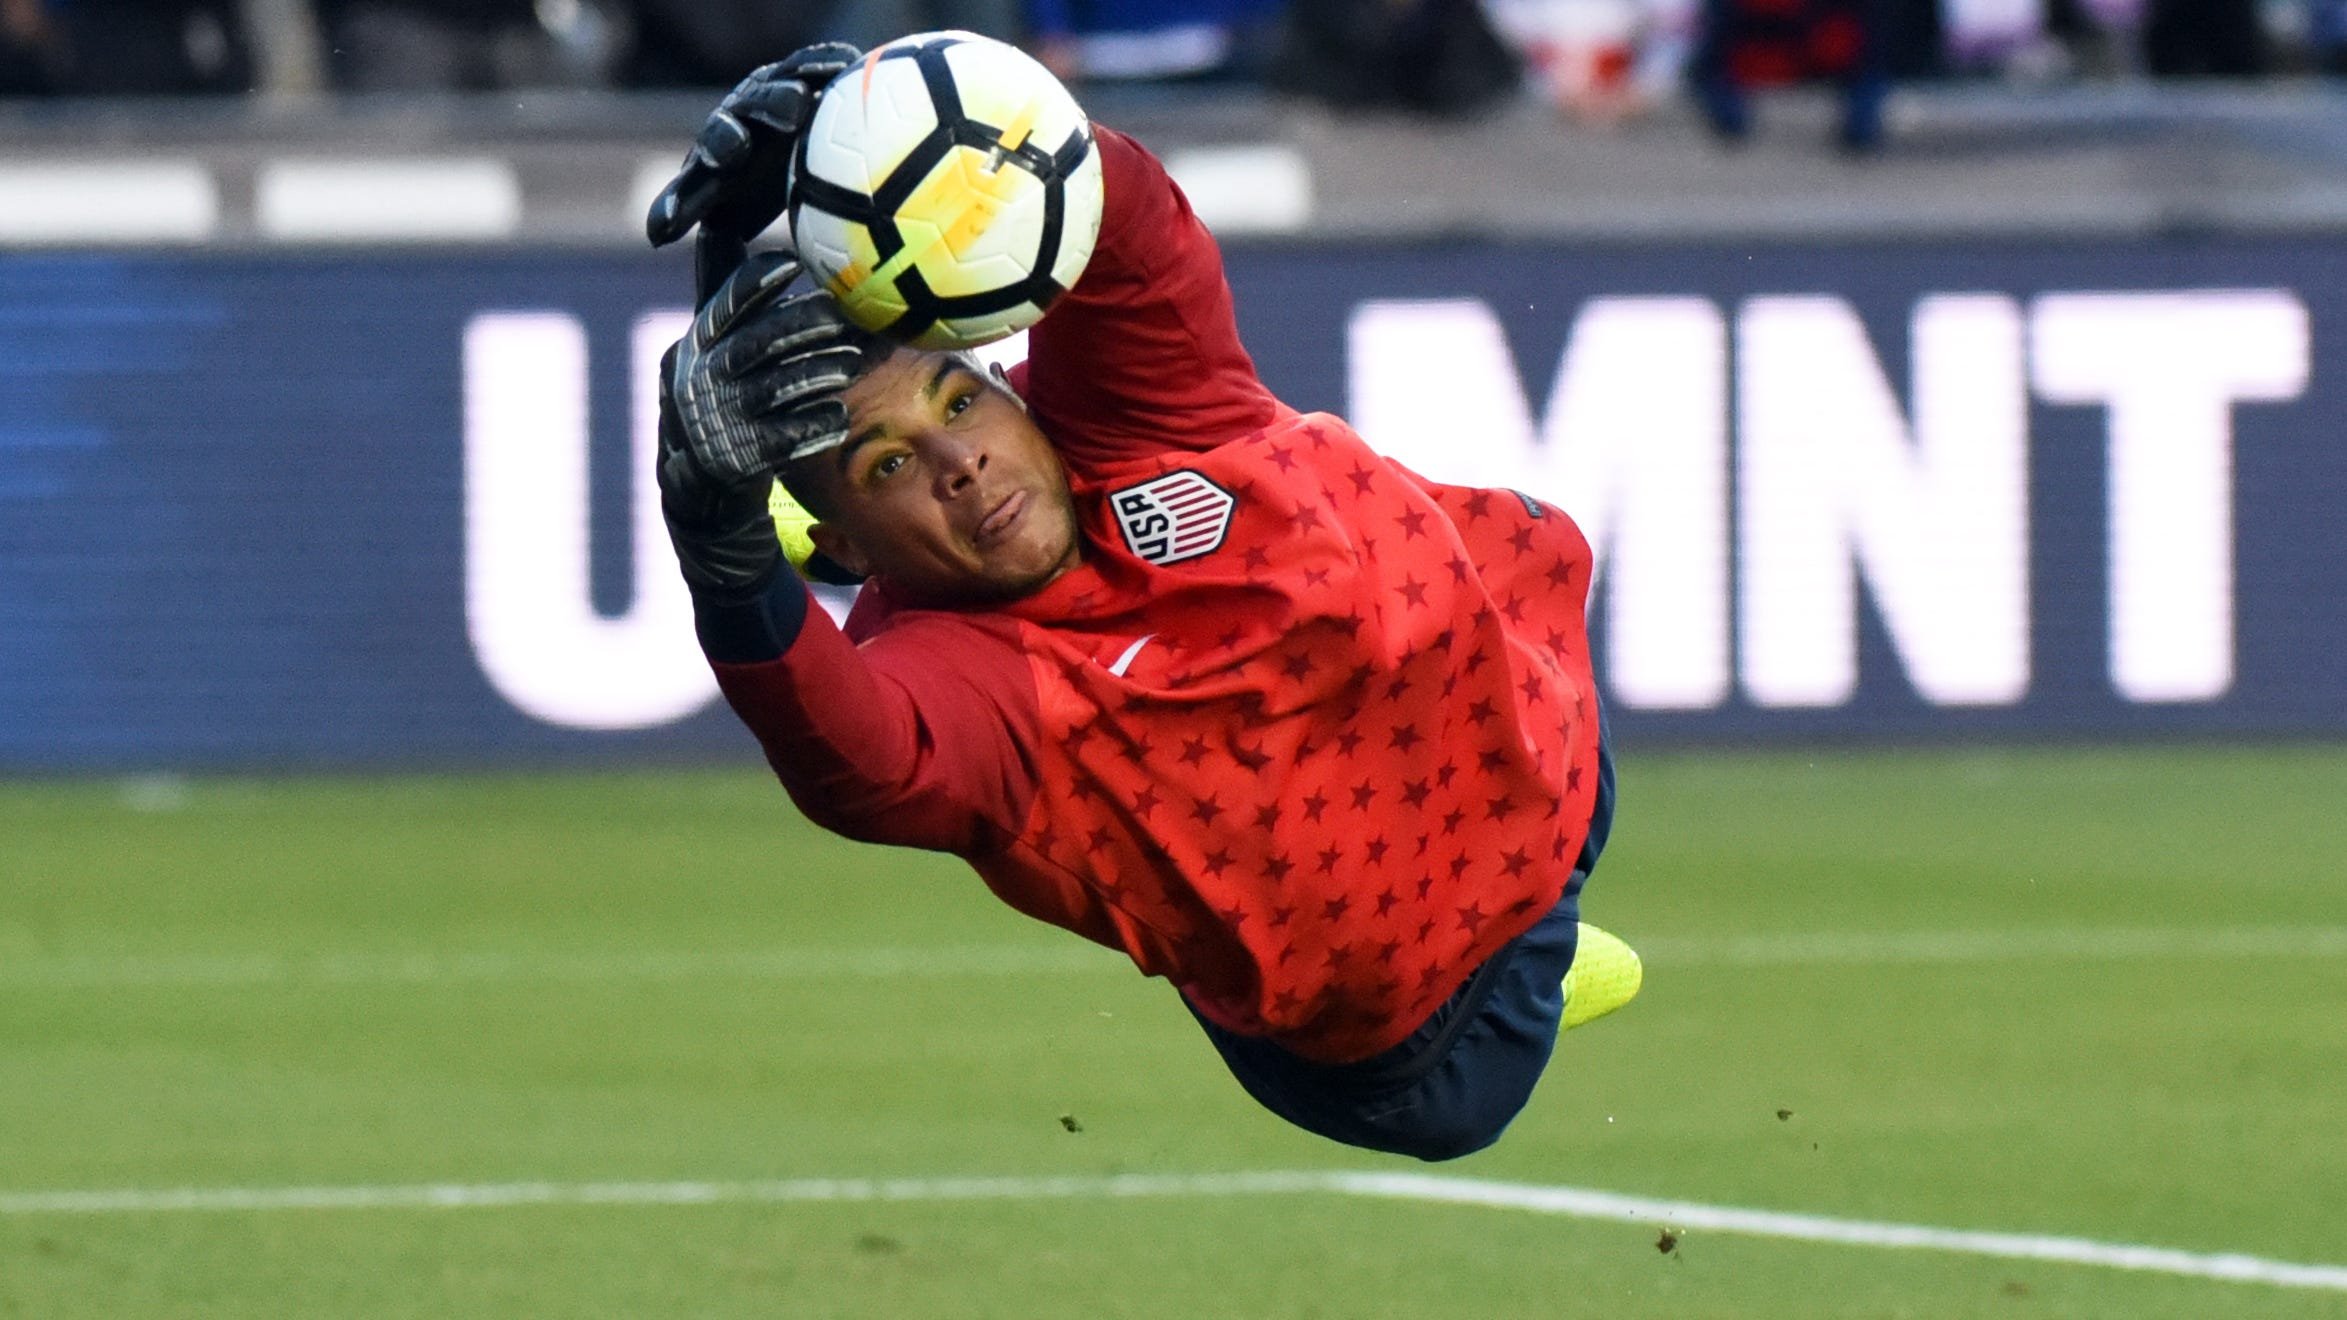 How to watch U.S. men's soccer team vs. Wales: TV channel, live stream, start time, USMNT roster